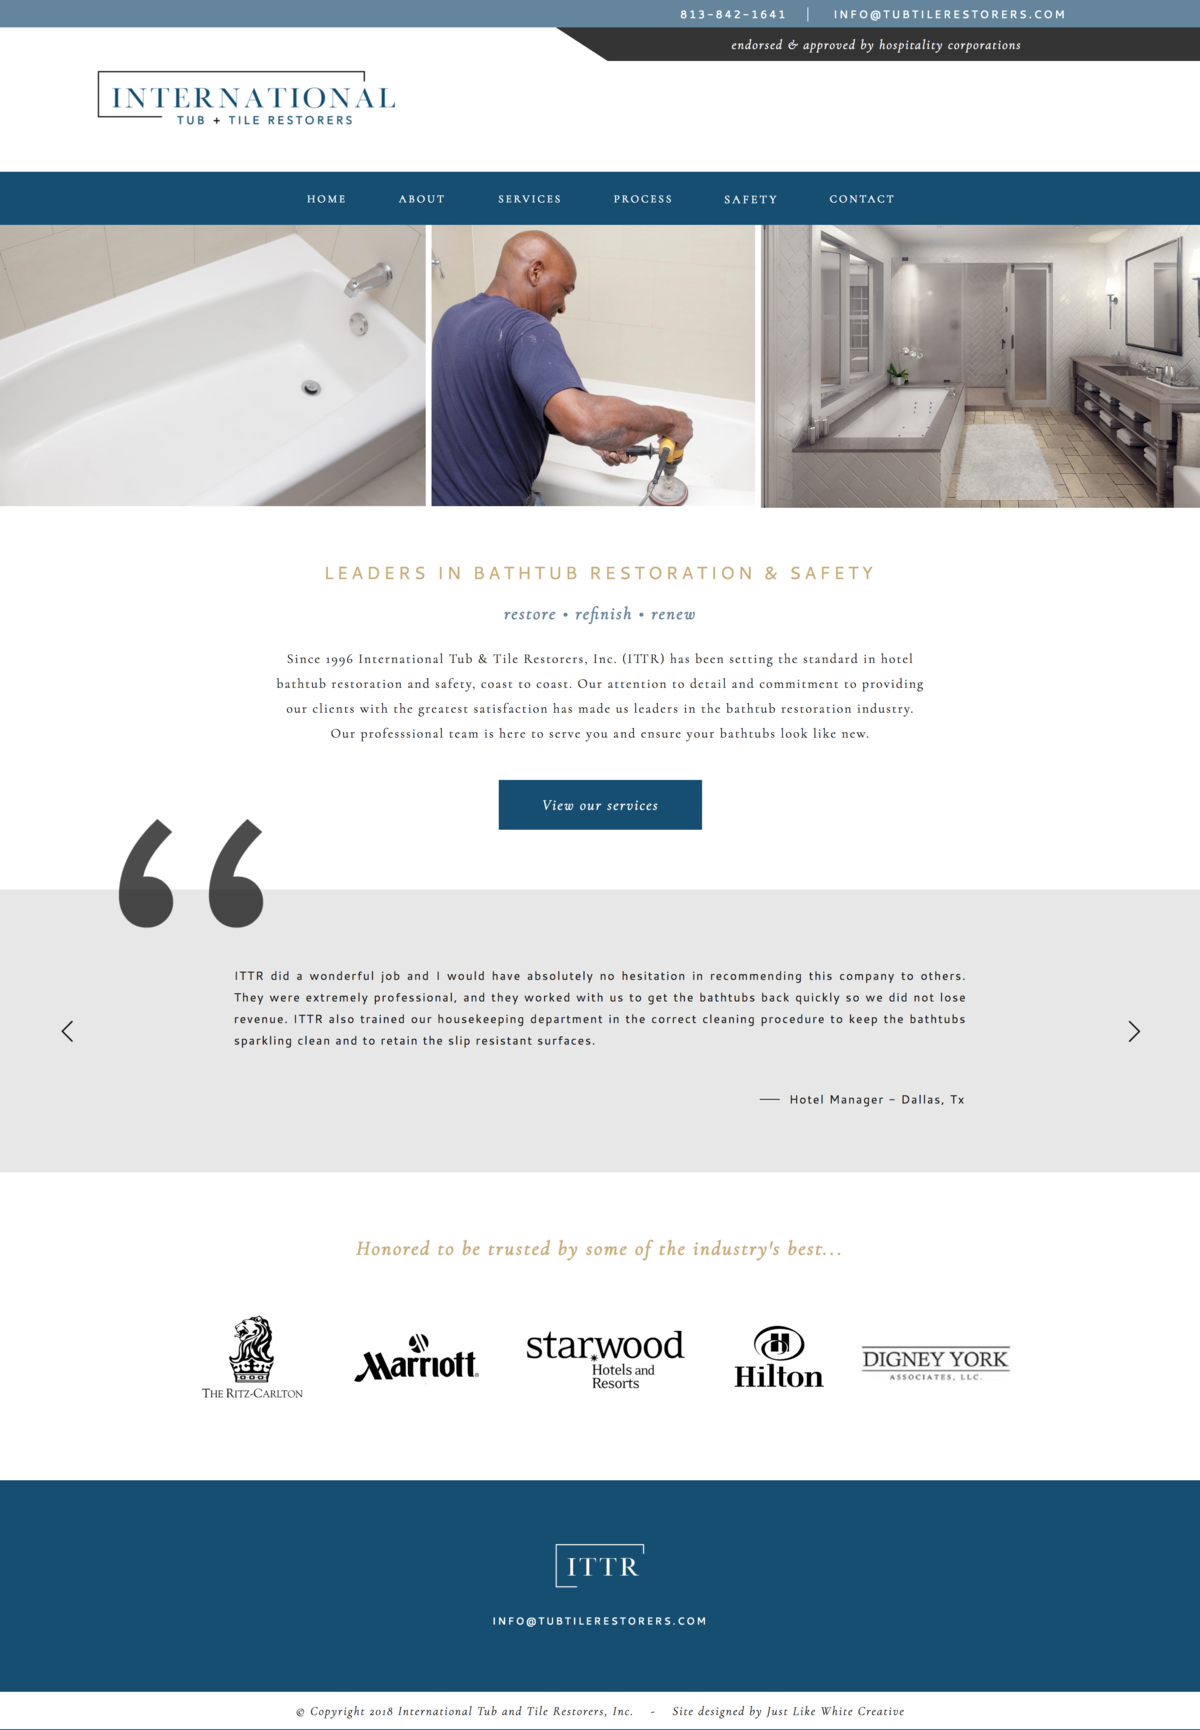 Clean, professional website design by Tribble Design Co.